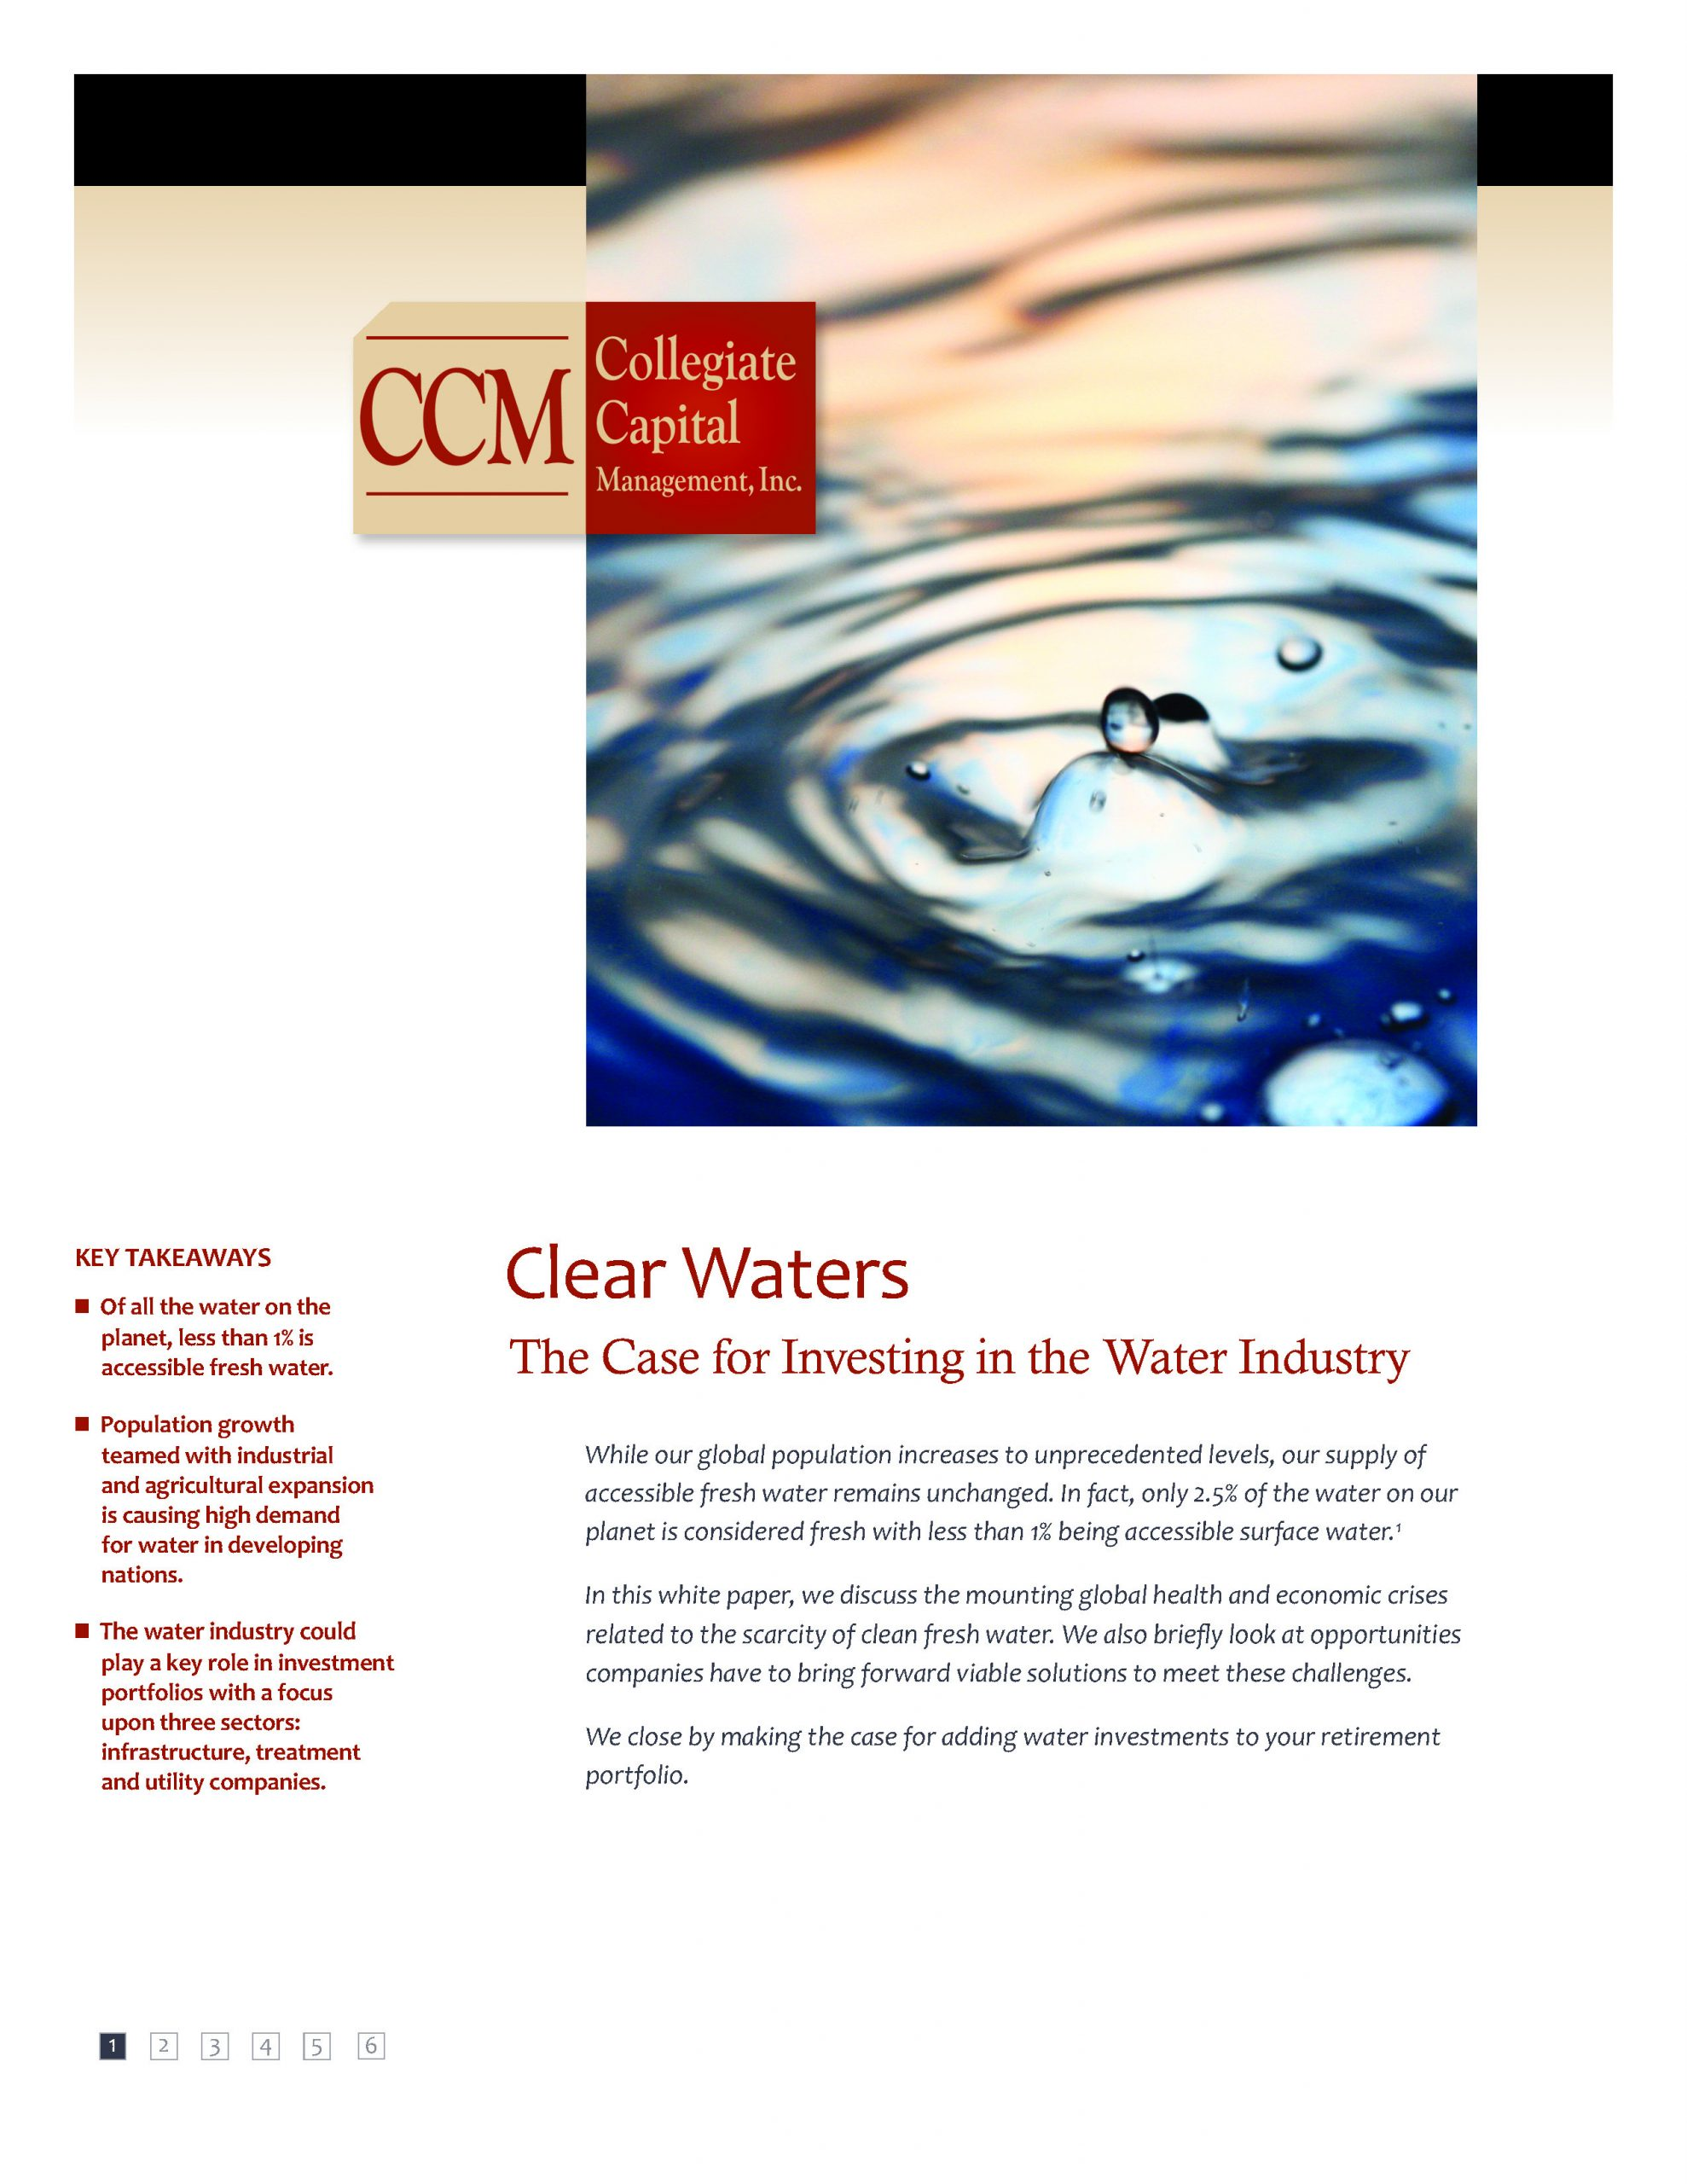 White Paper: Clear Waters- The Case for Investing in the Water Industry